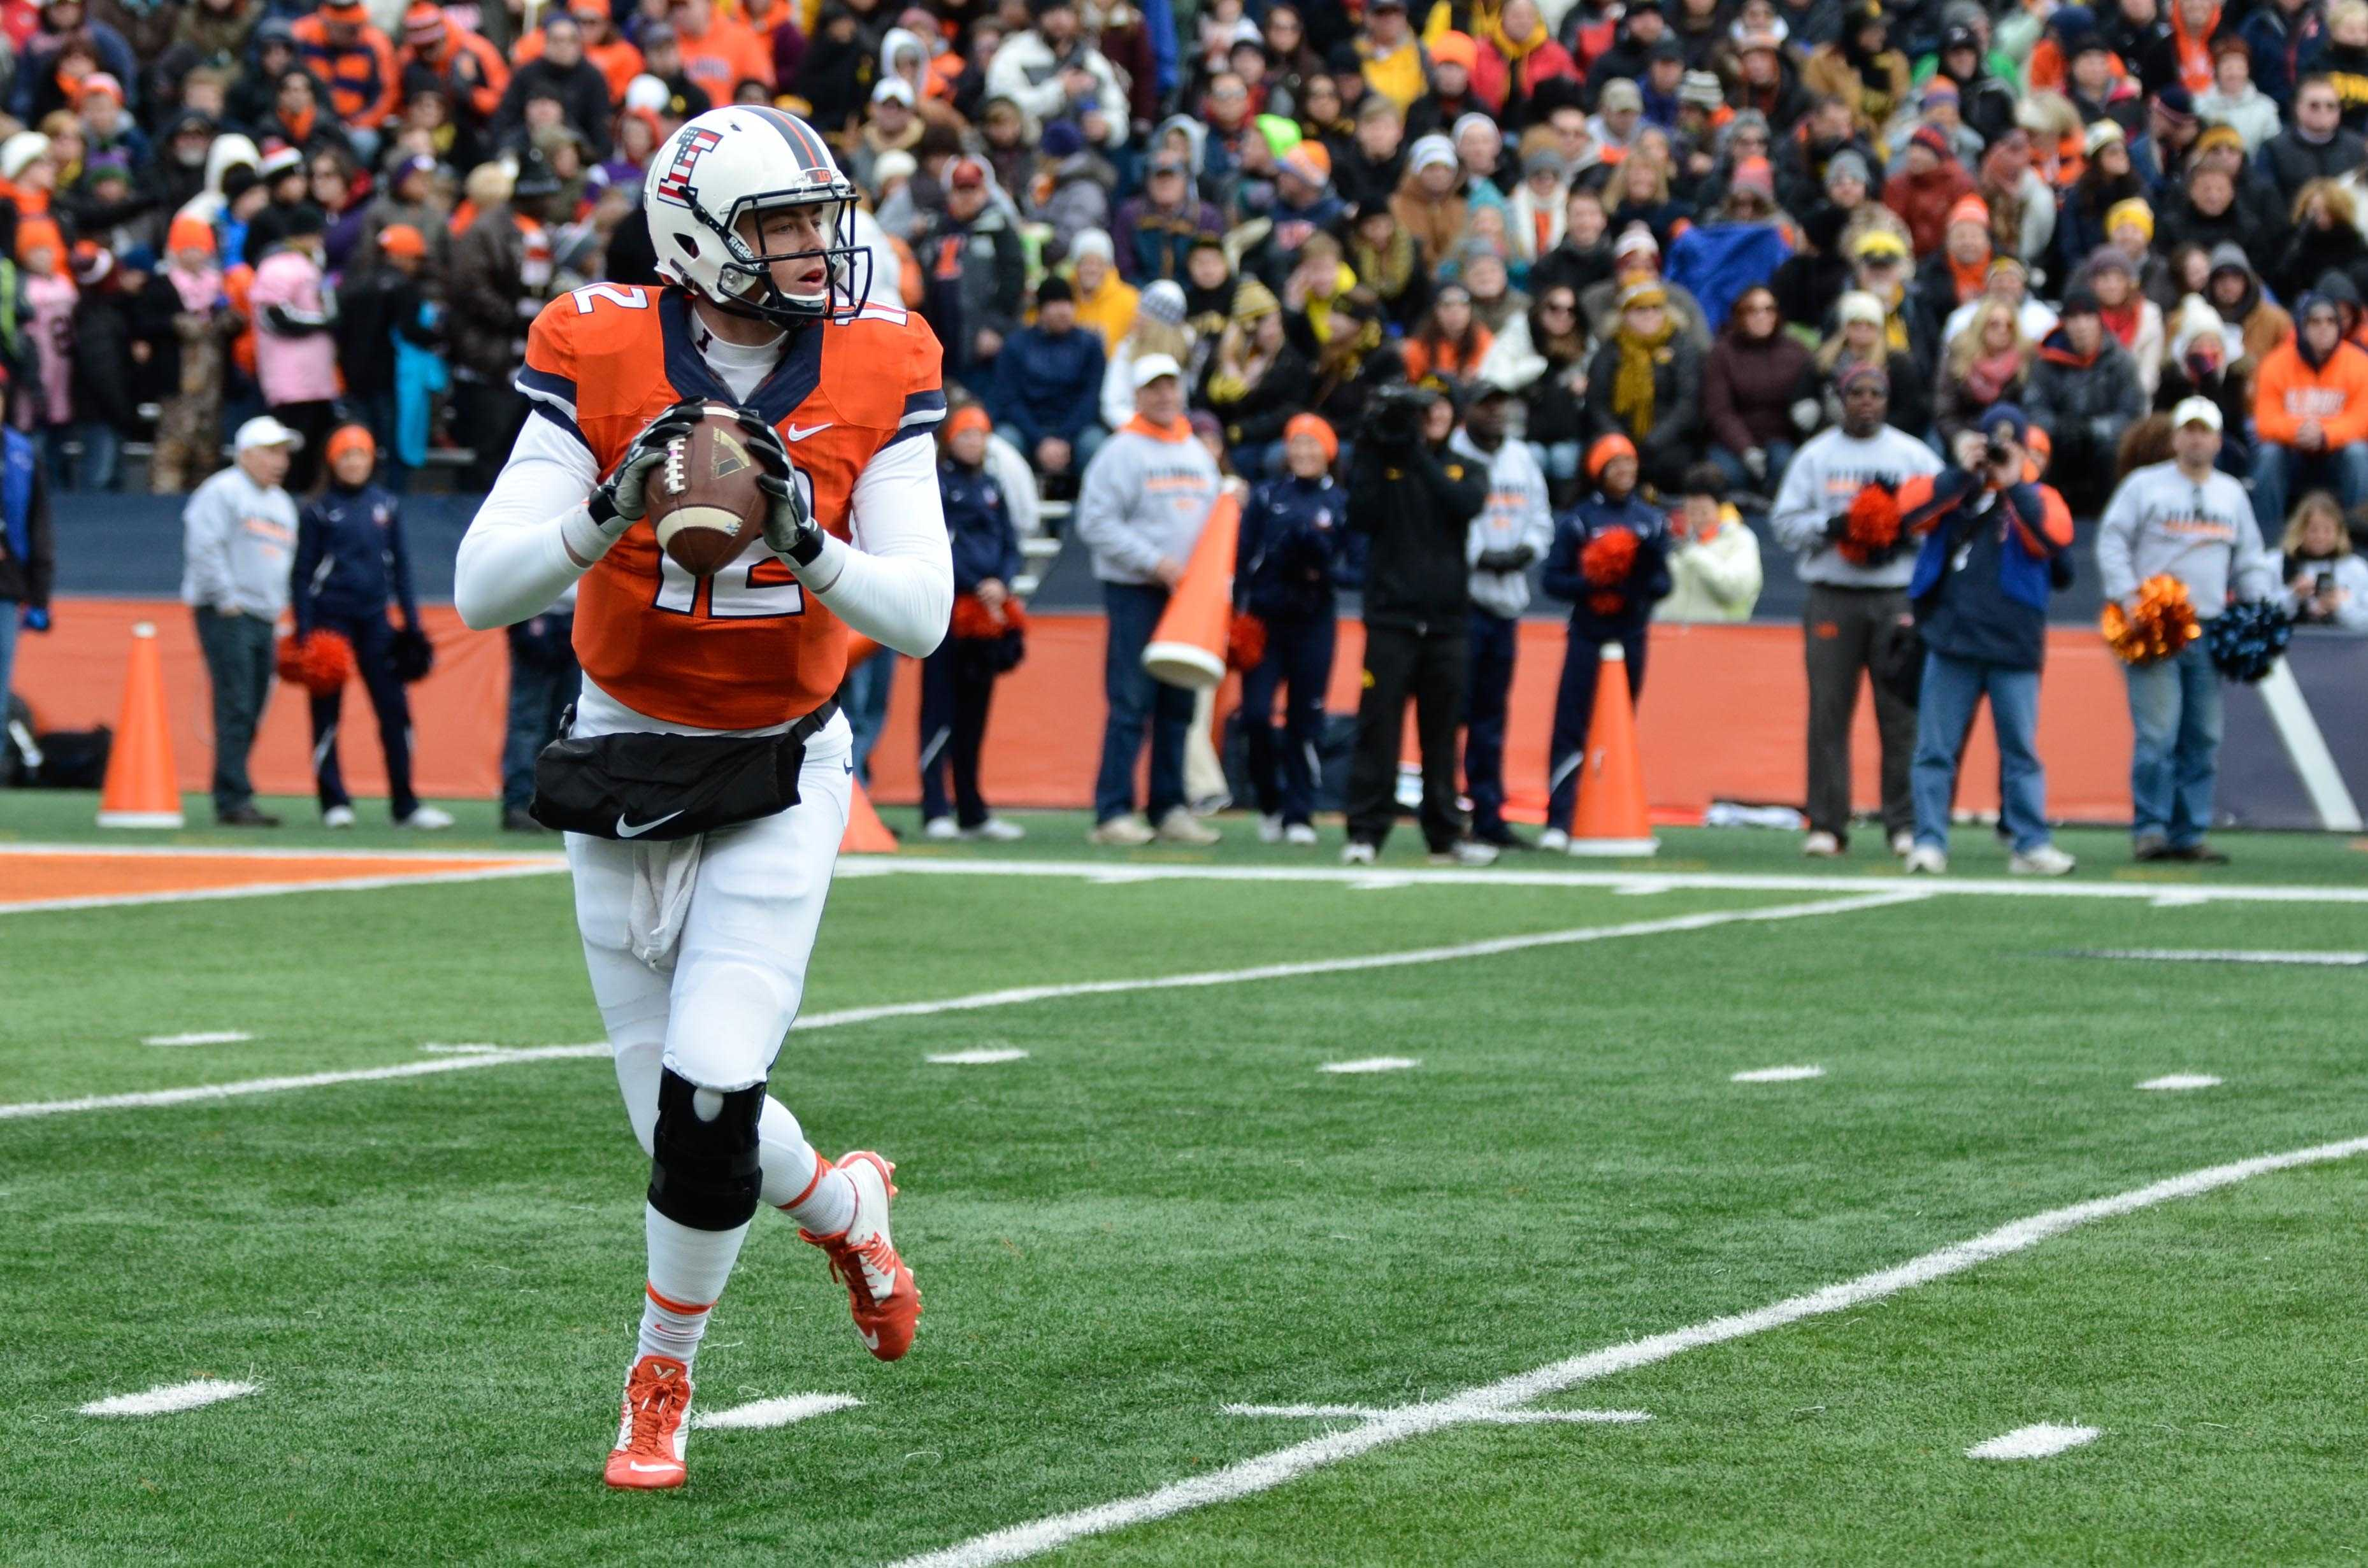 Illinois' Wes Lunt looks to pass the ball during the game against Iowa at Memorial Stadium on Nov. 15, 2014. The Illini lost 30-14.